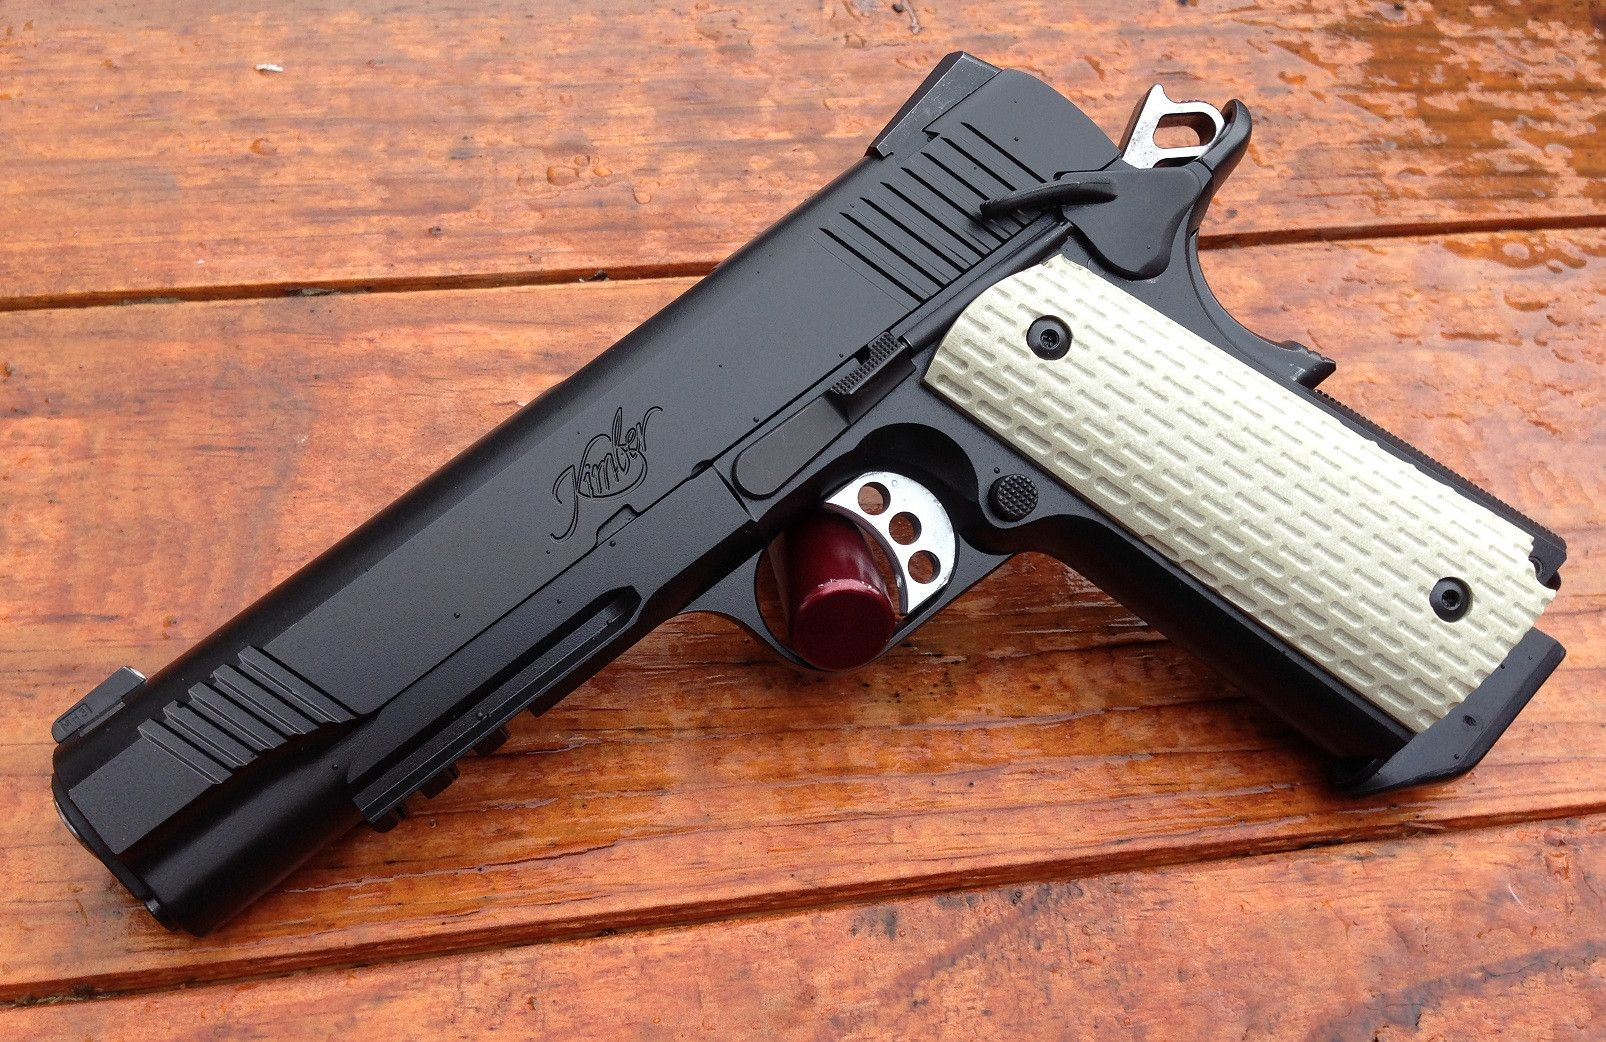 Kimber Warrior /from 1911 series/ -  45 ACP | Pistols and